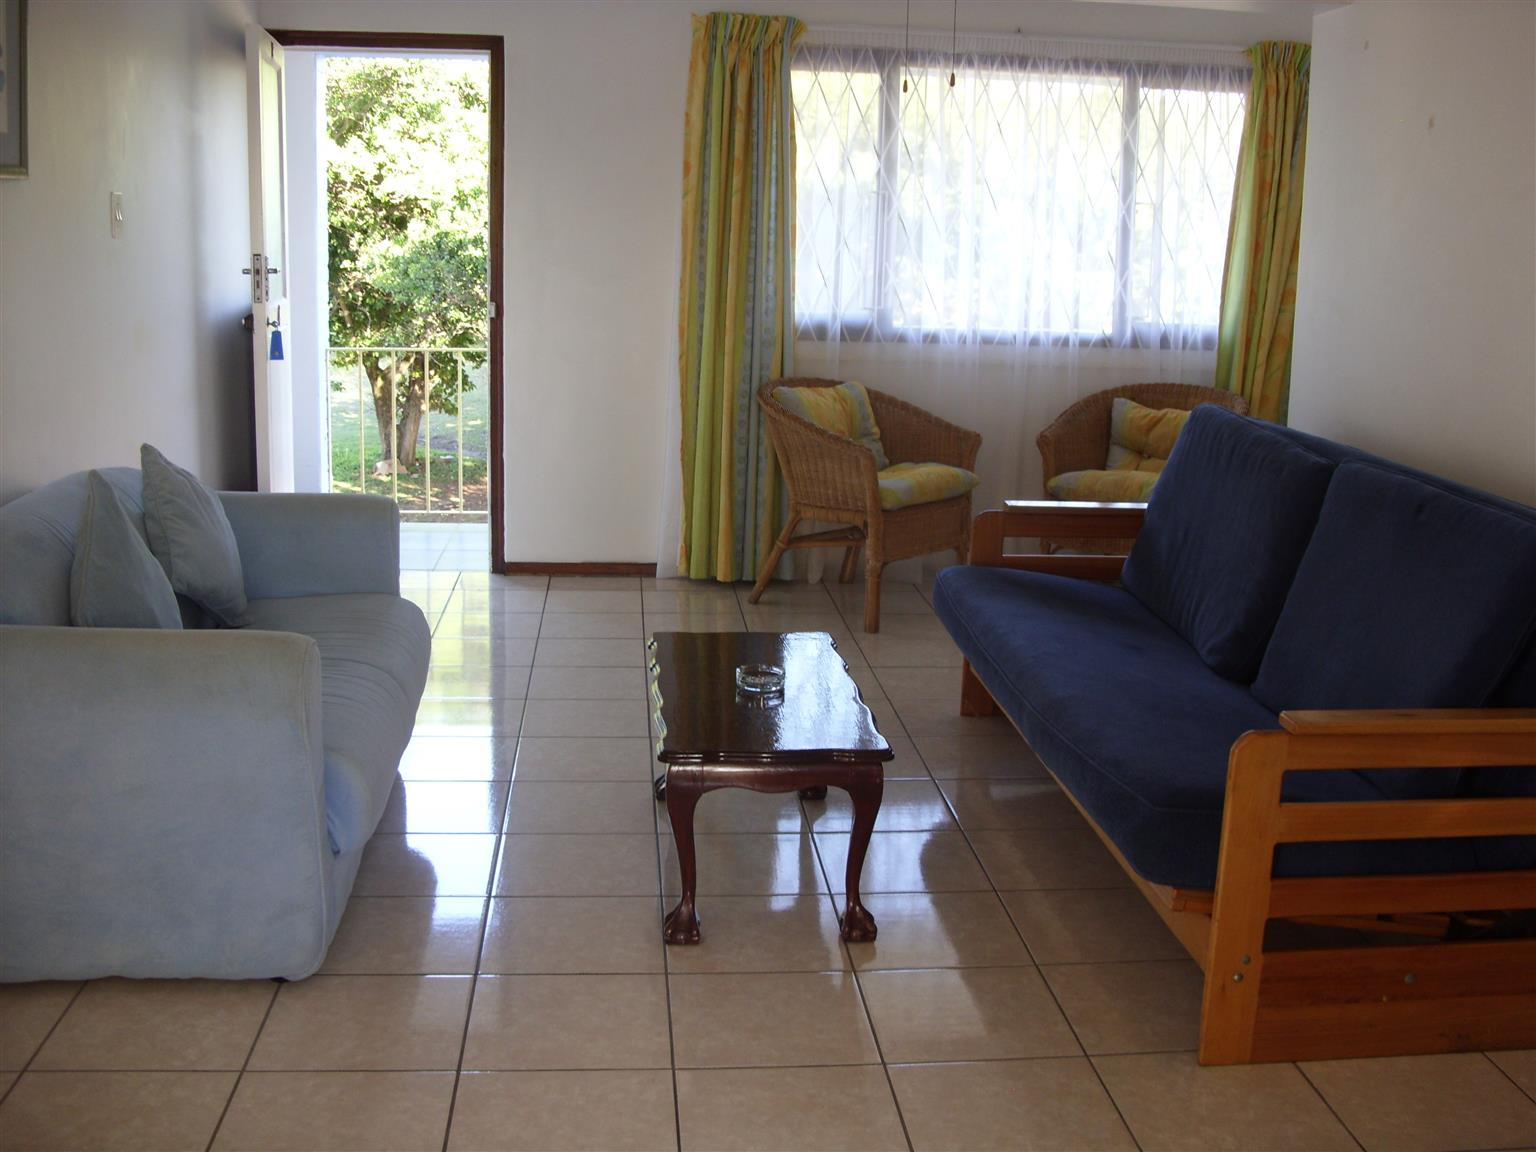 IMMEDIATE OCCUPATION FULLY FURNISHED 1 BEDROOM FLAT R4500 PM SHELLY BEACH, UVONGO ST MICHAELS-ON-SEA